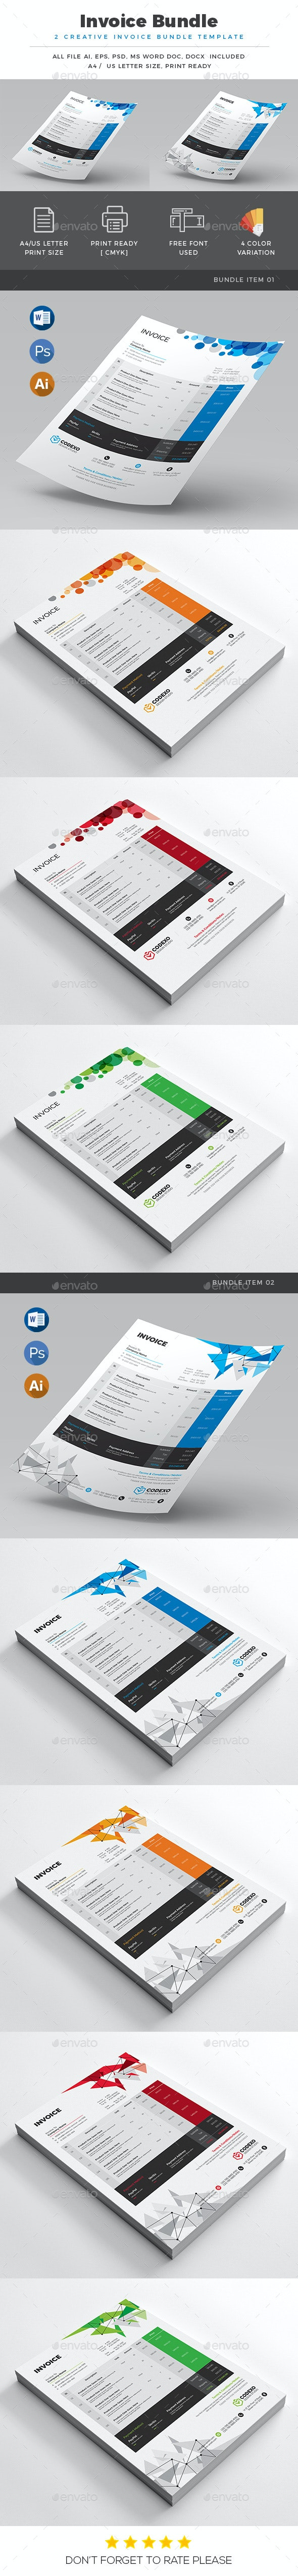 Invoice Bundle - Stationery Print Templates